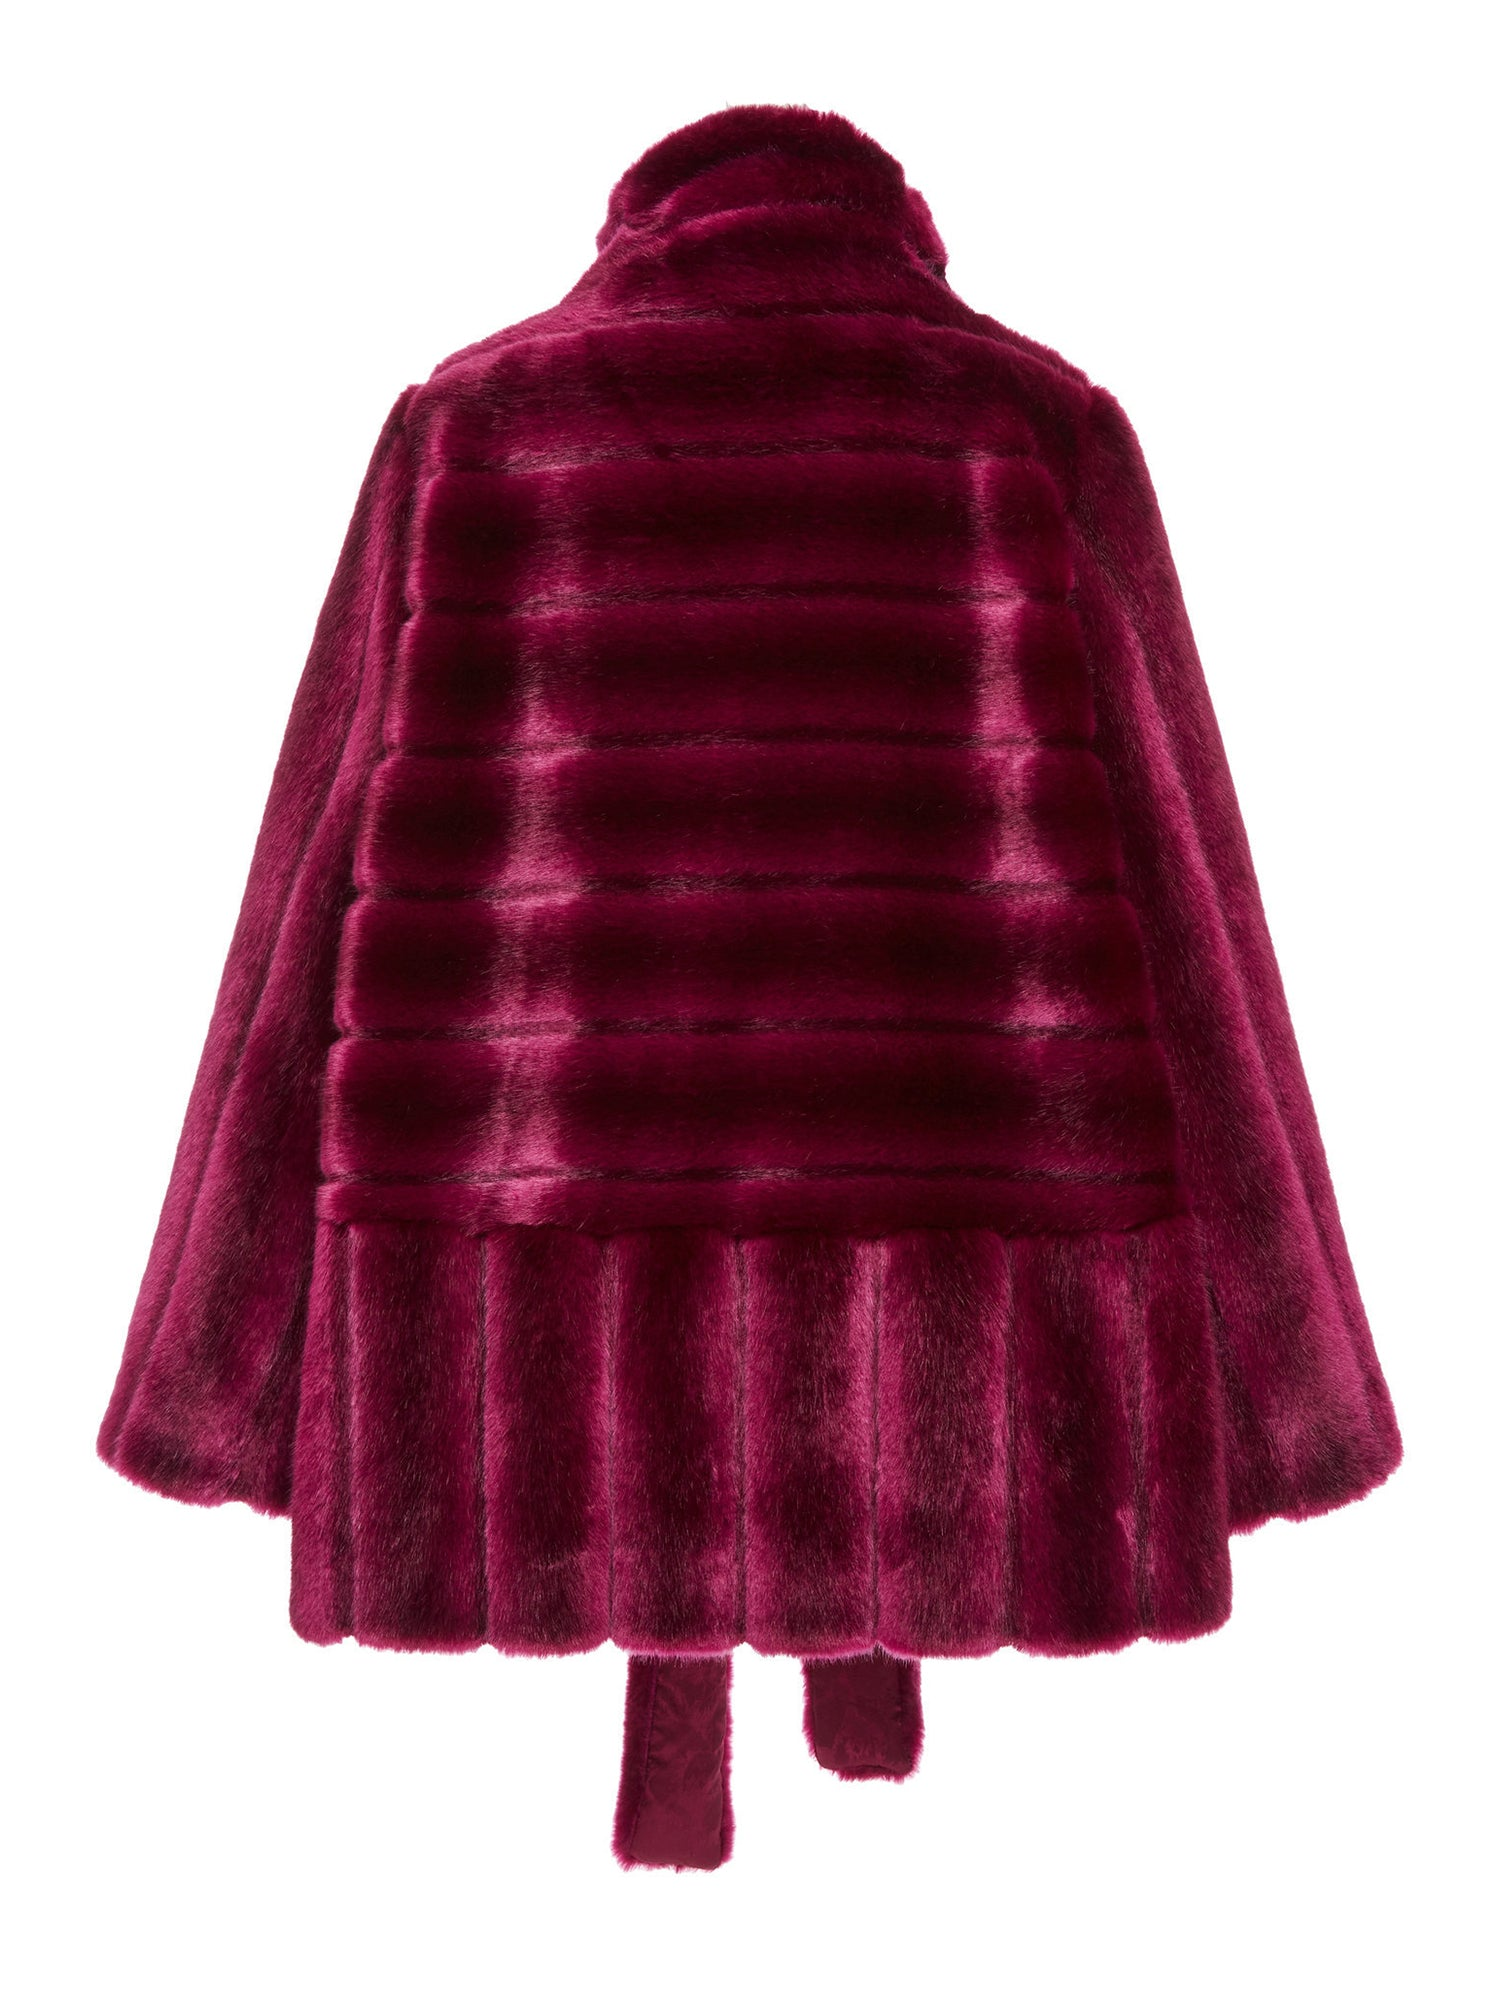 A Packshop Of Marei1998 Yoshino Coat In Bold Raspberry Hue. Perfect For Cold Weather, This It Is Made From Plush Faux Fur, Which Feels So Warm And Comfortable. Cut In A Slight A-Lined Shape And Fully Lined, It Is Ideal For Smooth Layering. Back View.